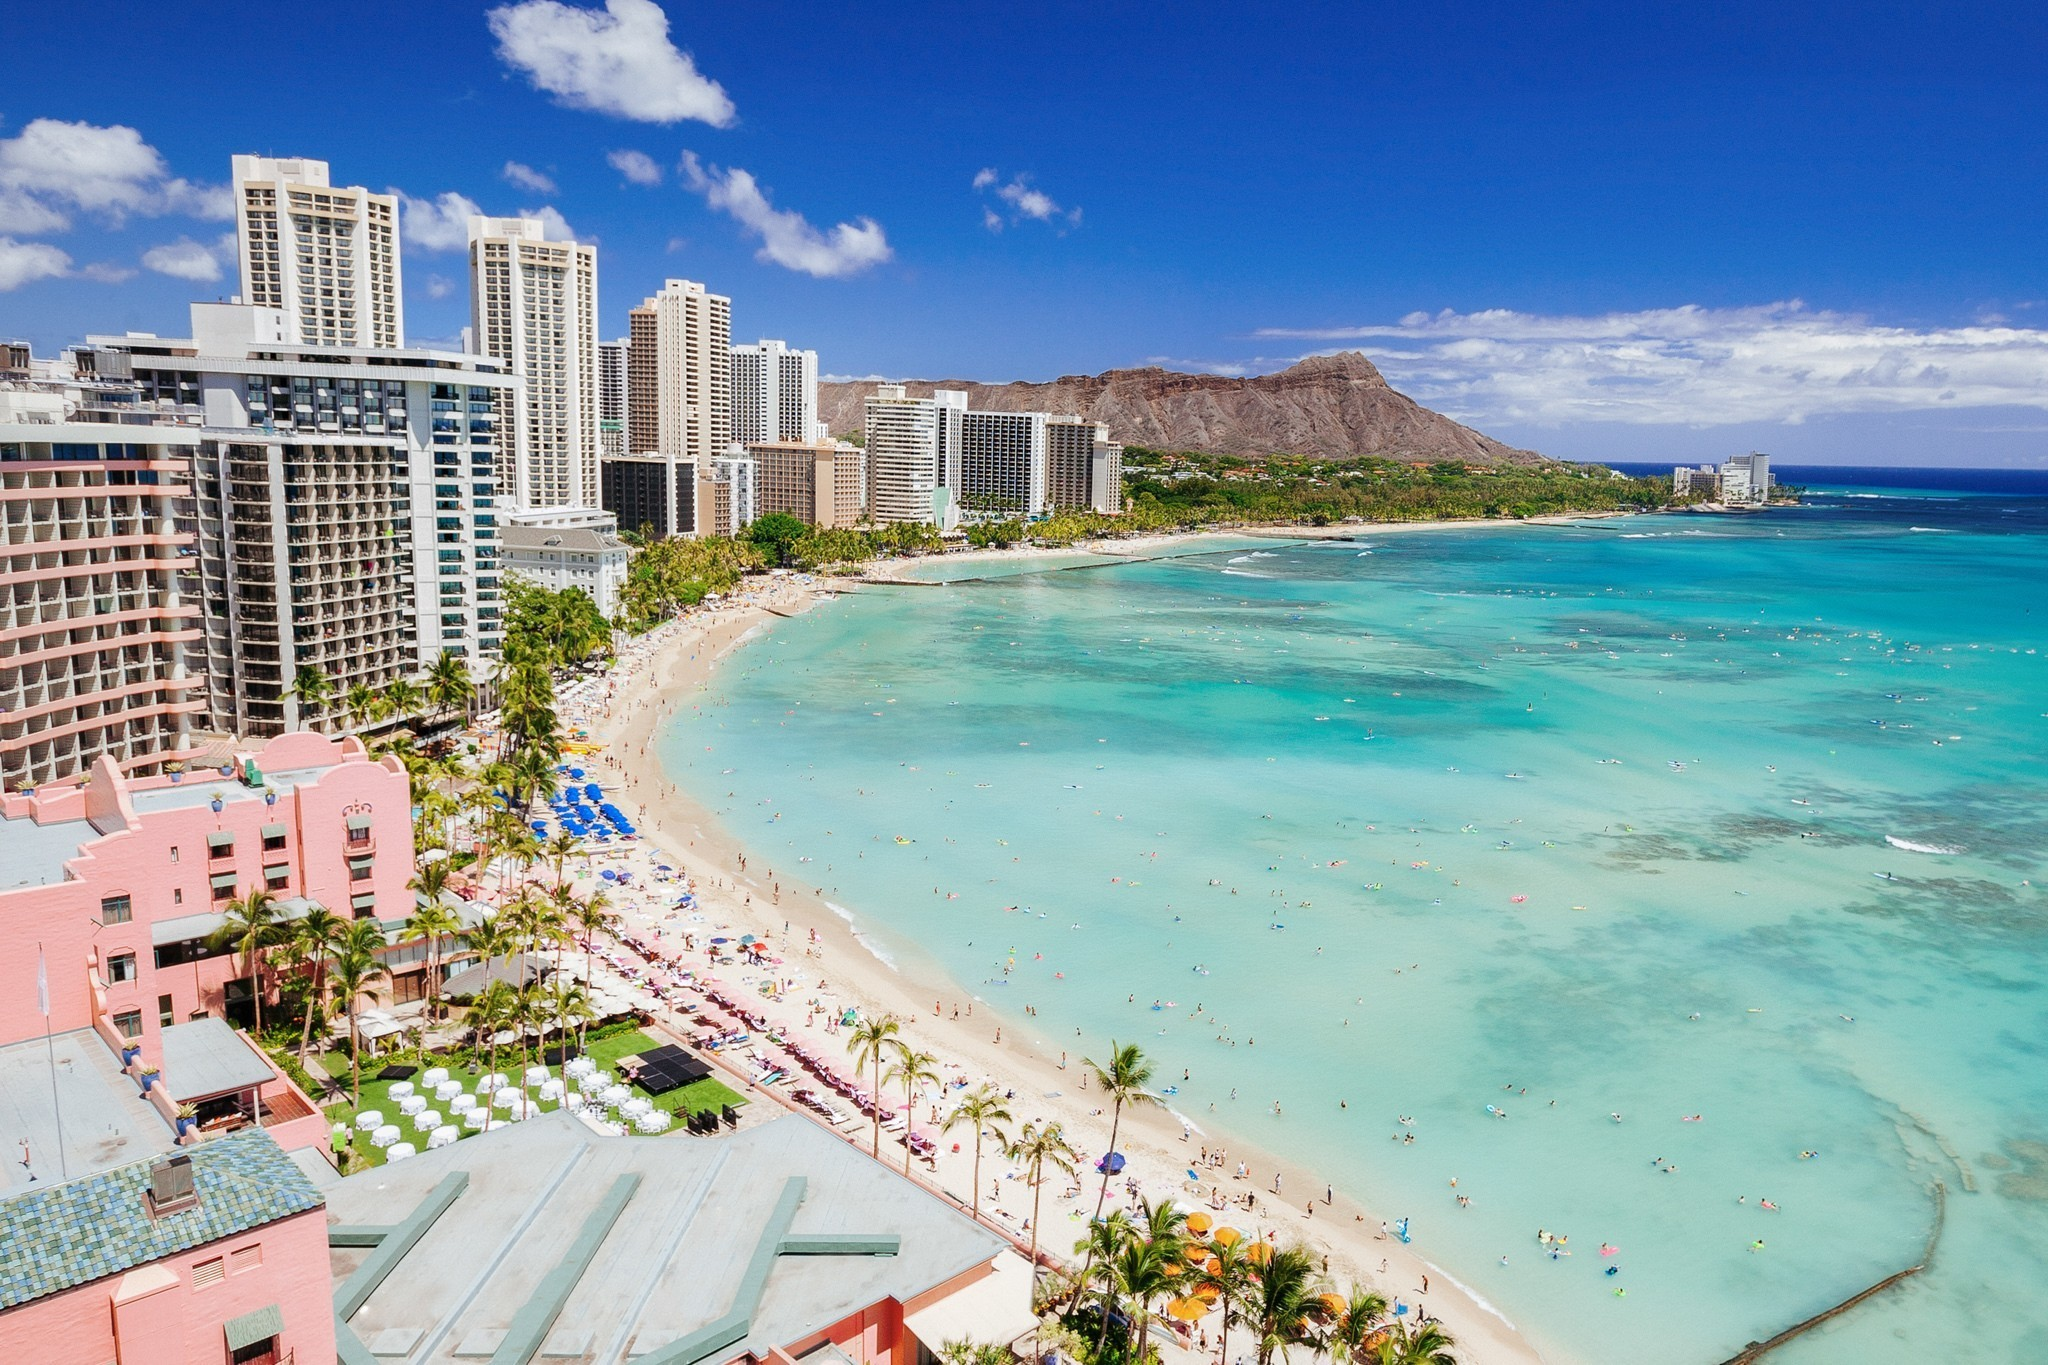 HAWAII... Just here to Relax - Cover